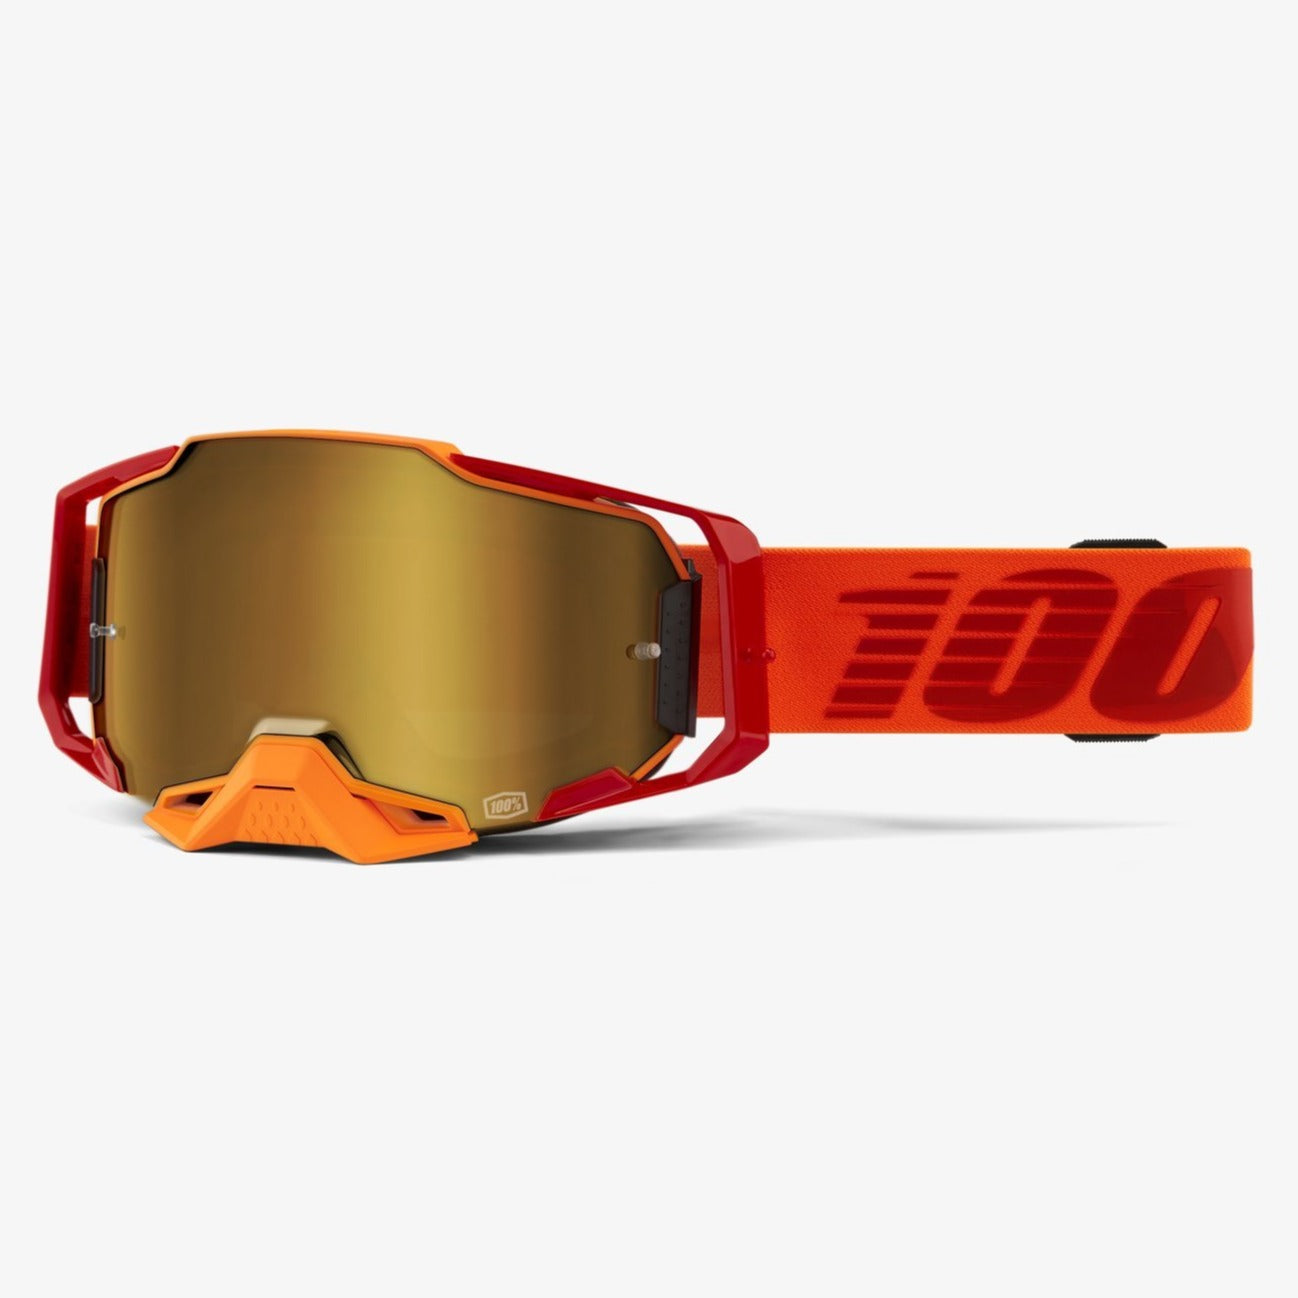 Goggles: 100% ARMEGA LITKIT Gold flash Mirror